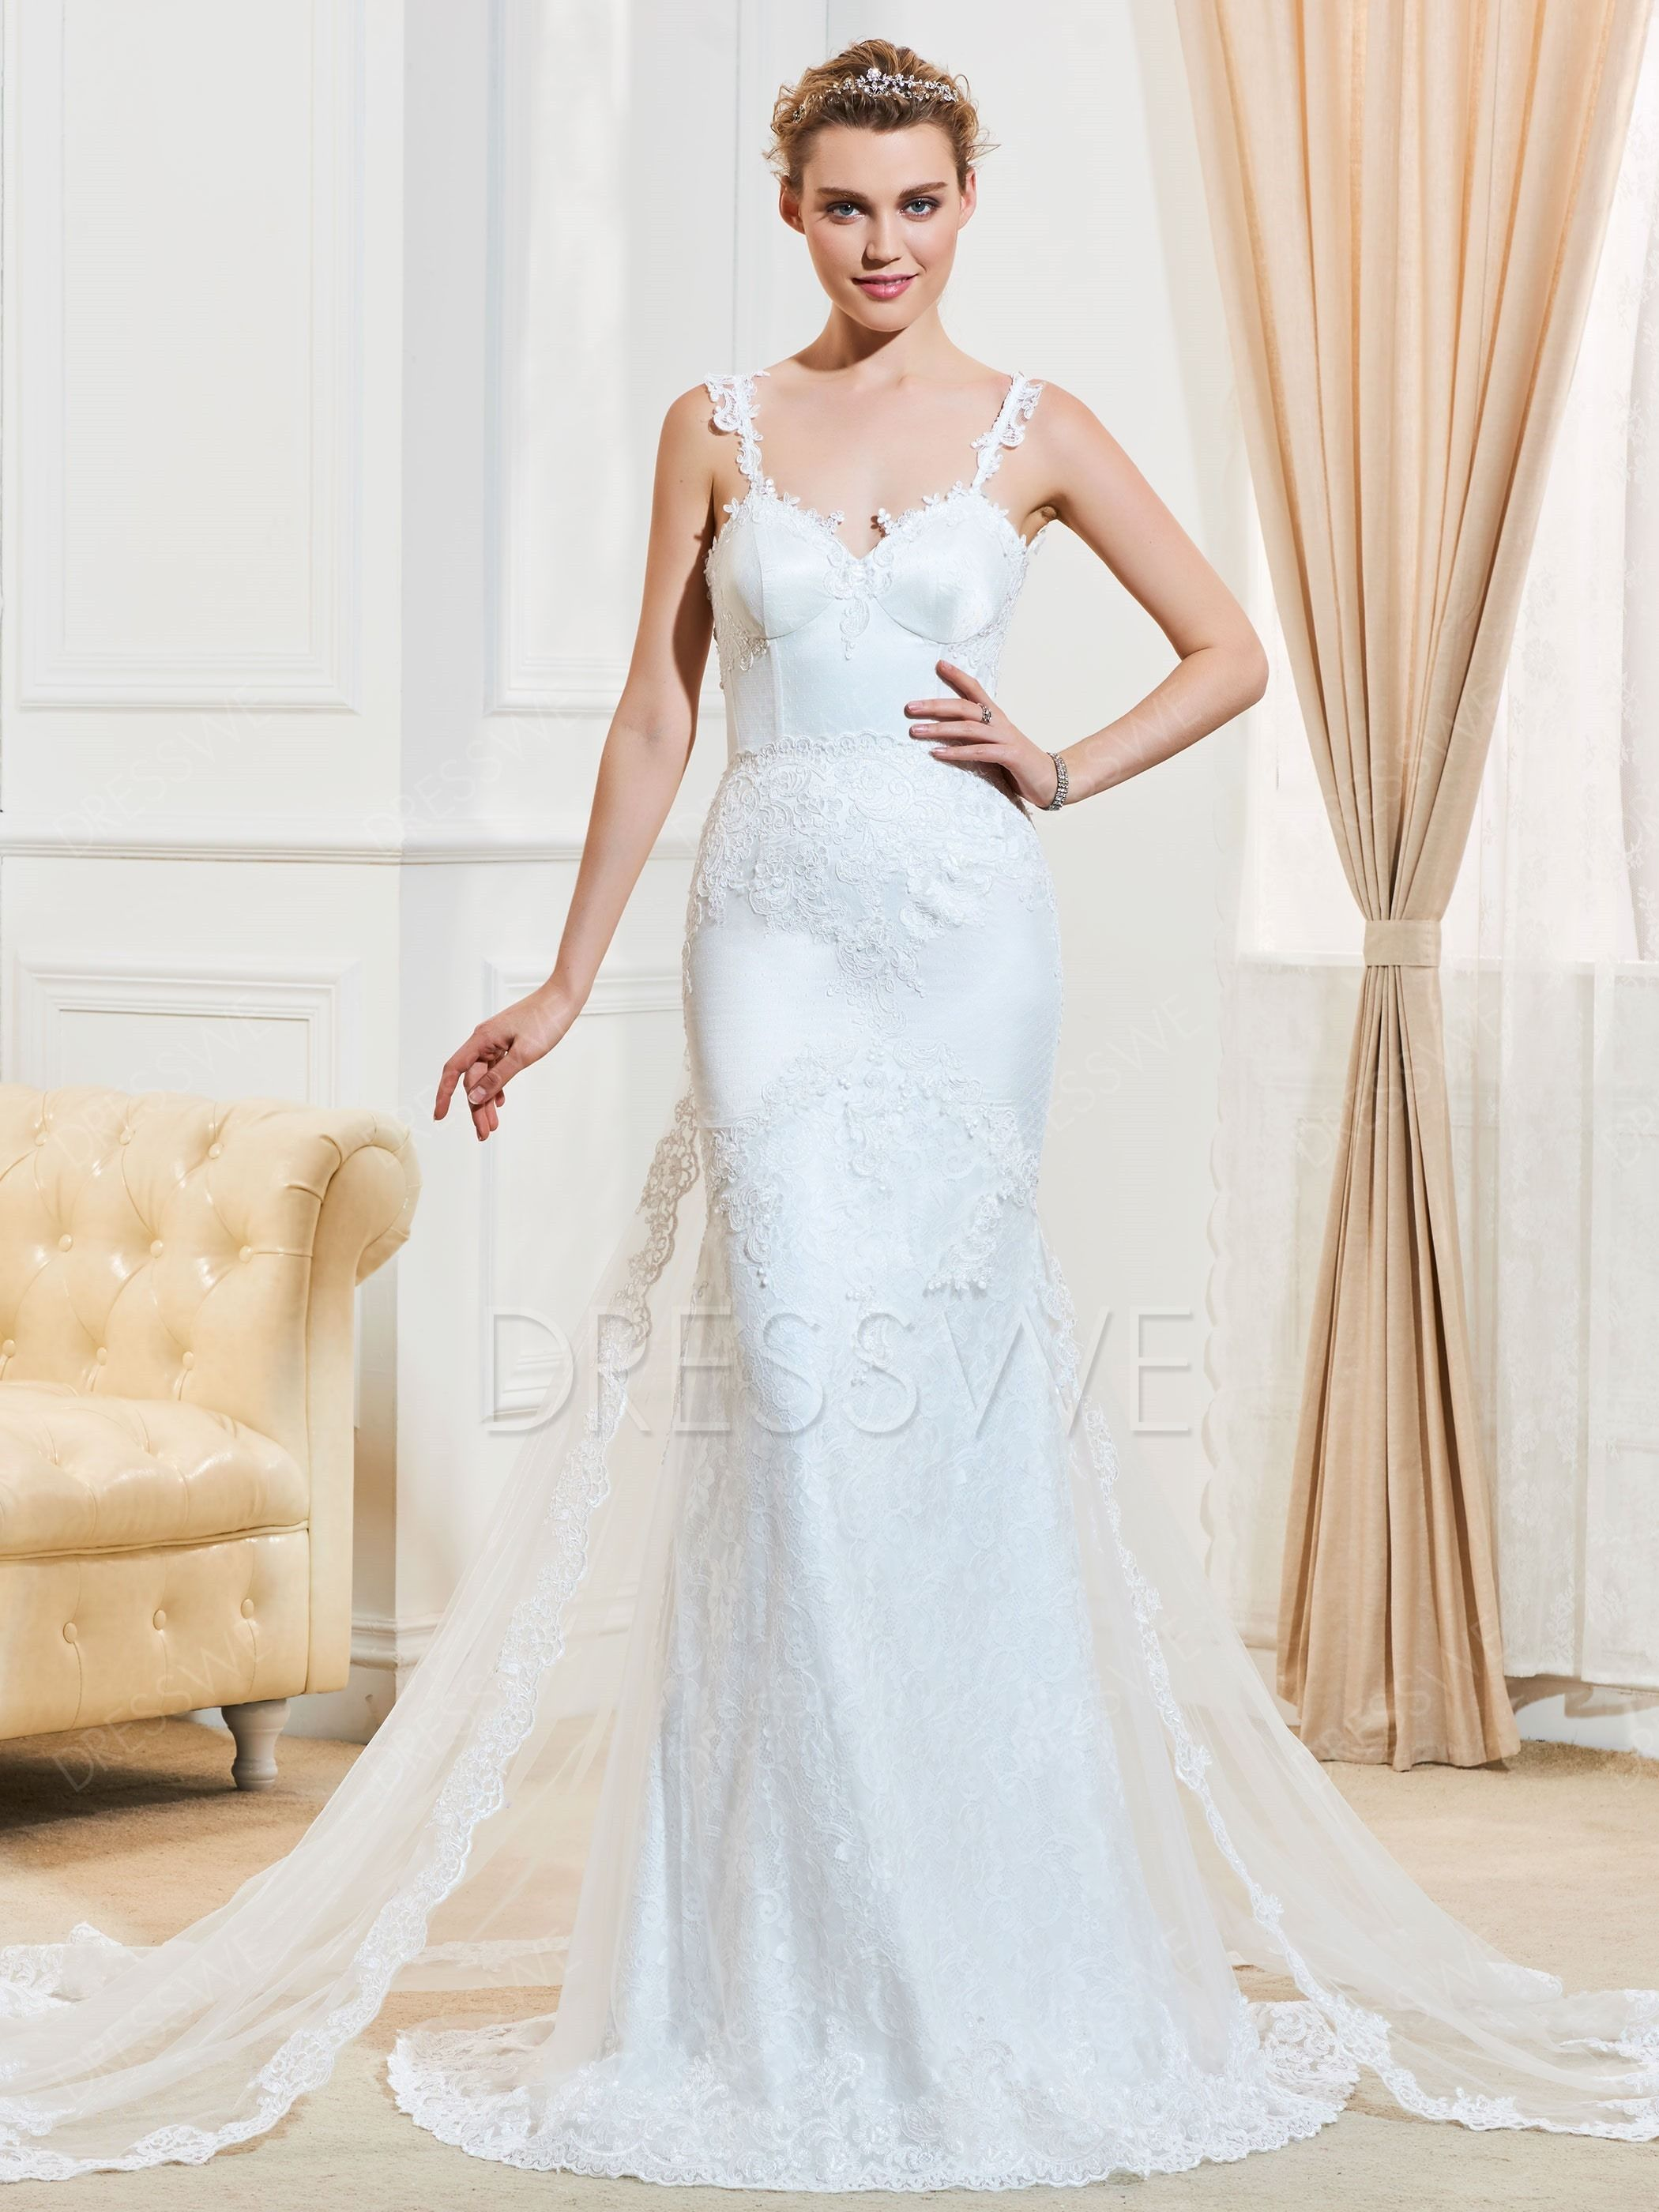 Wedding dresses with train   Dresswe SUPPLIES Spaghetti Straps Lace Watteau Train